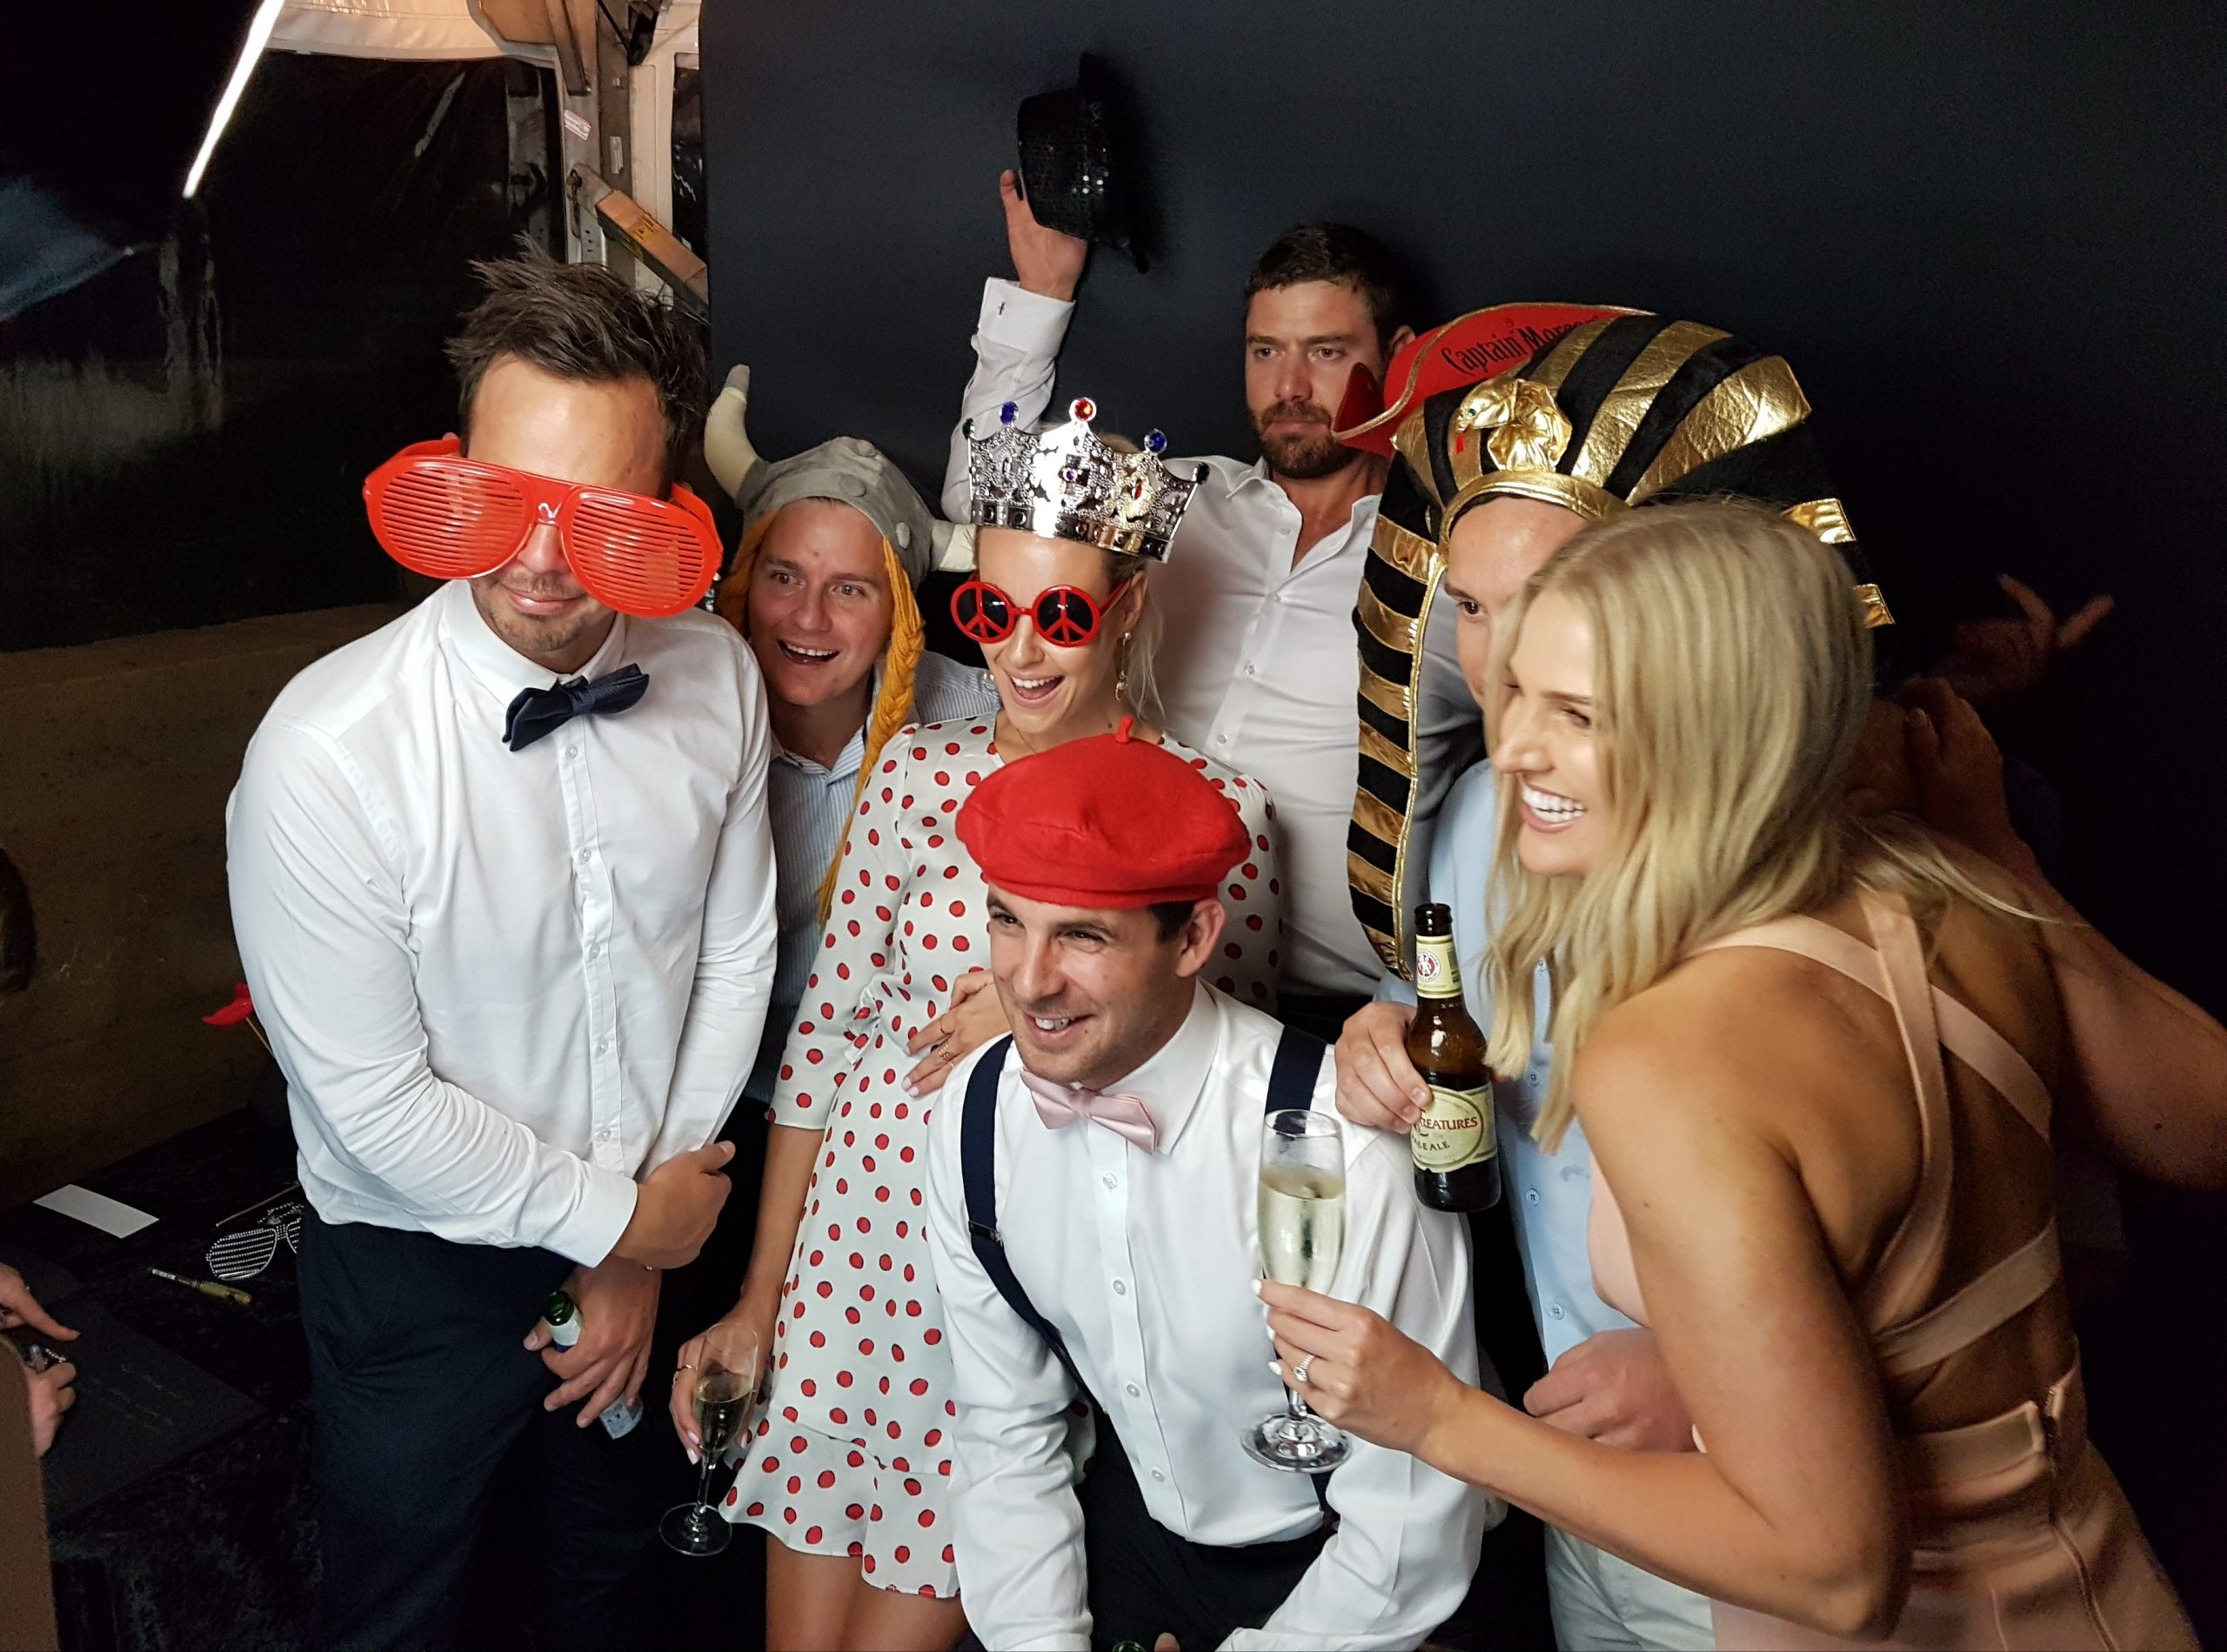 Open or Enclosed Photo Booth